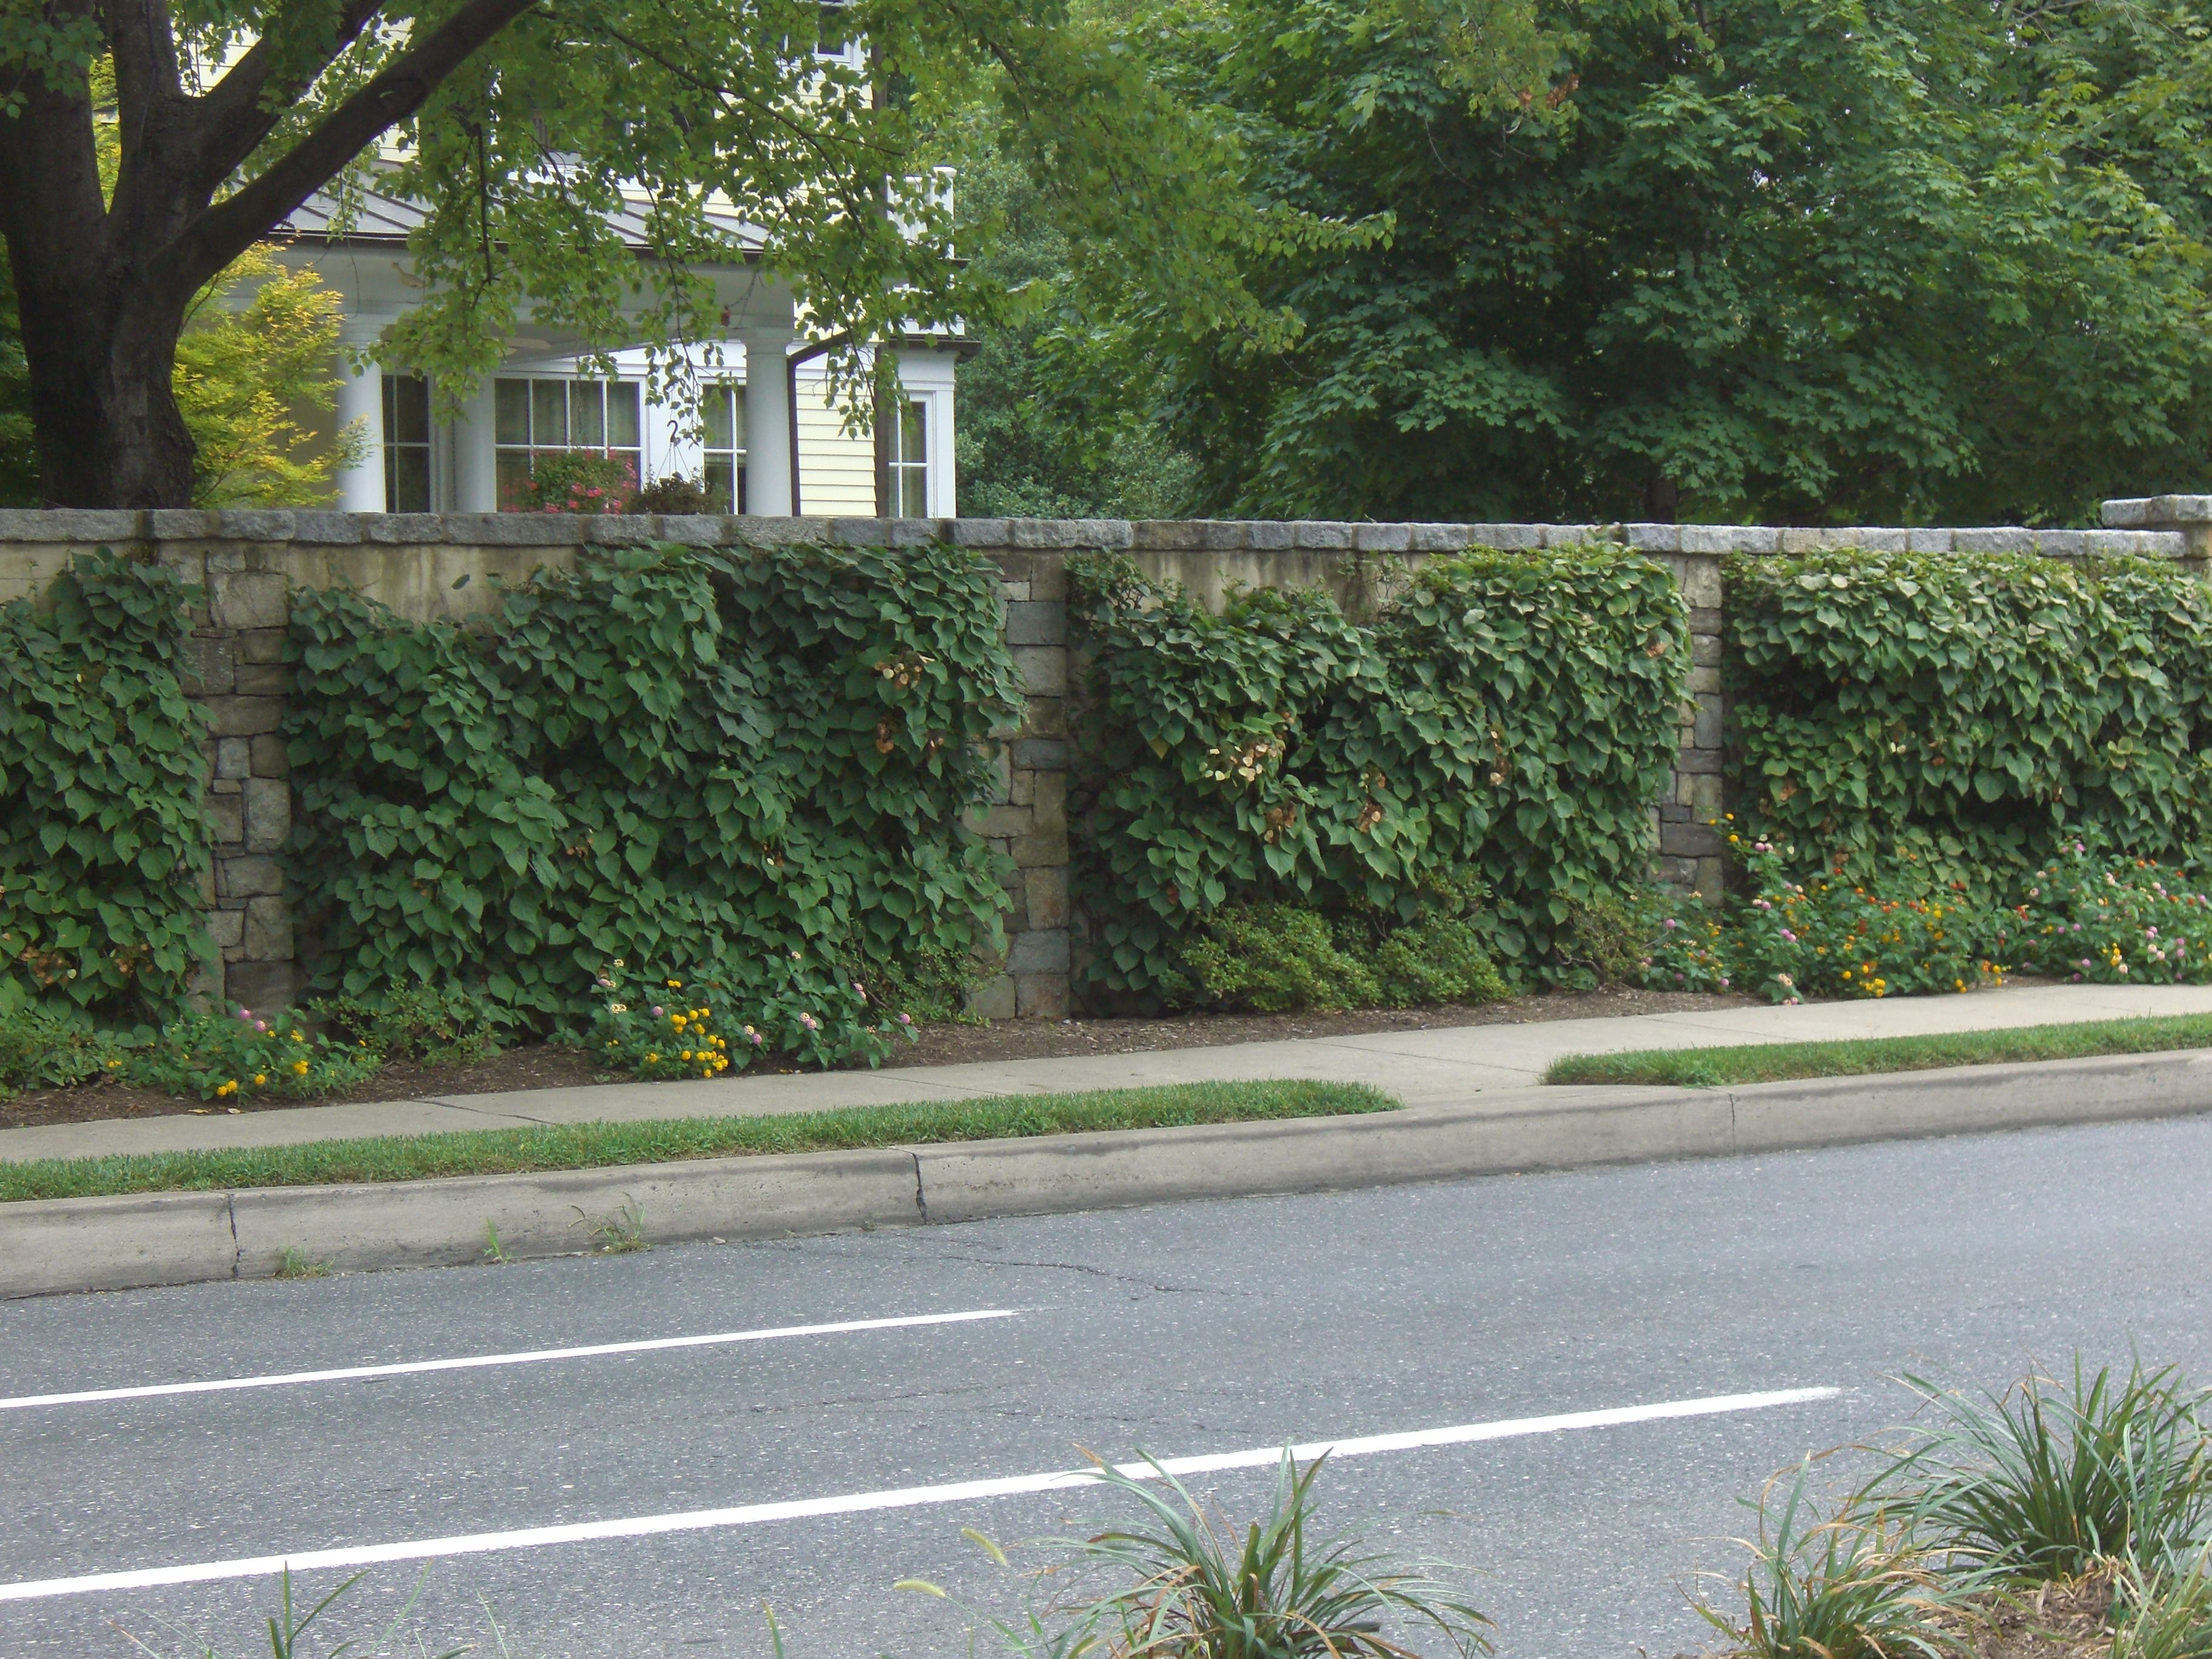 Stone block retaining wall with greenery on it in front of a house, viewed from across a street